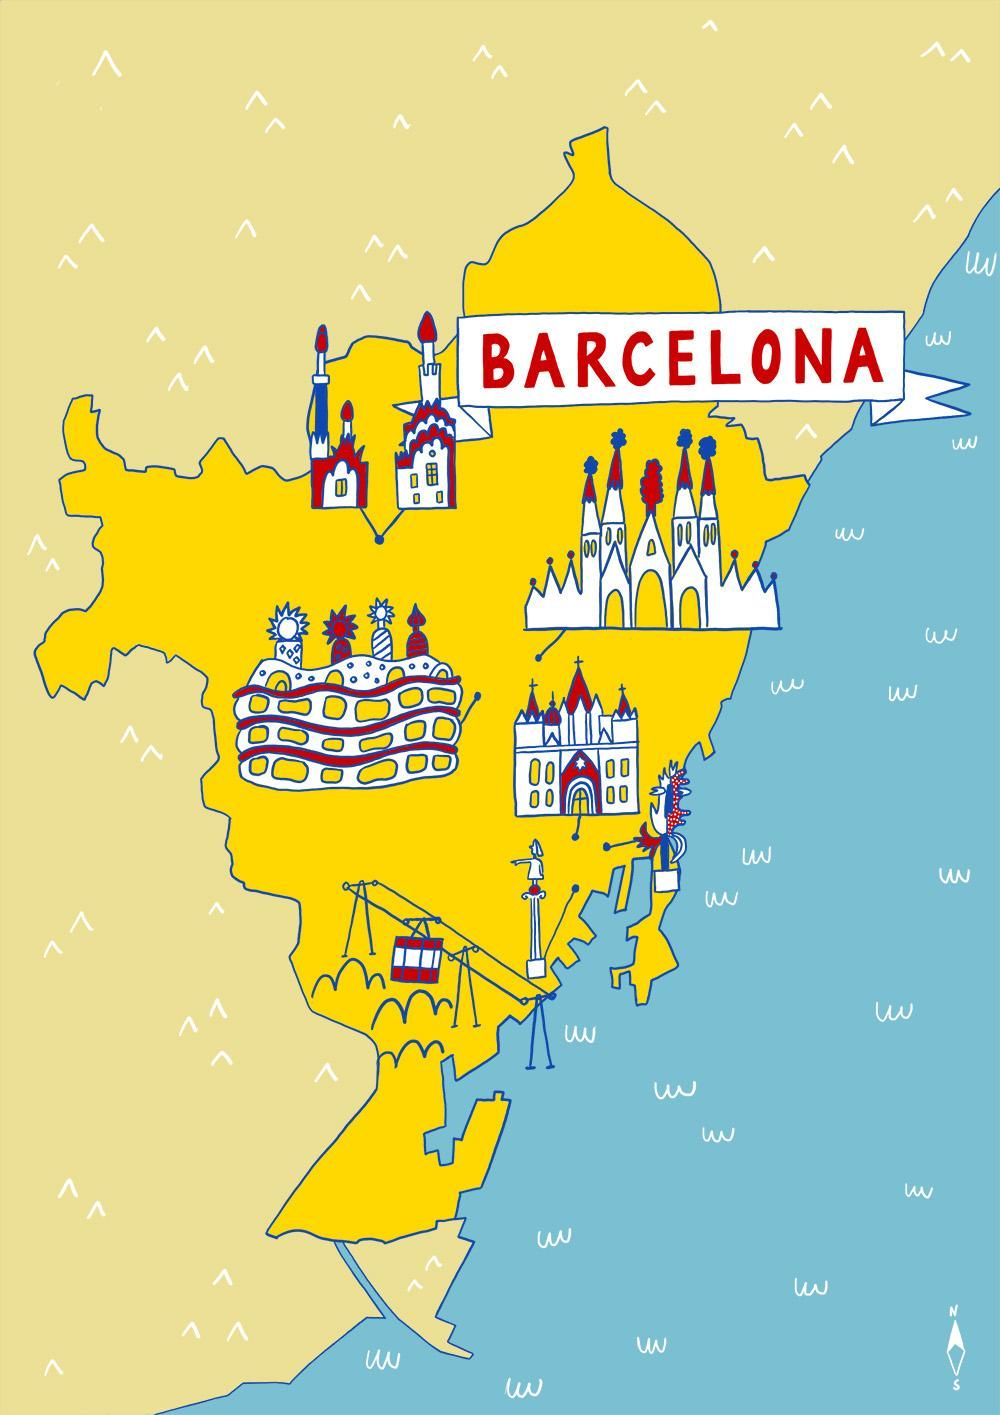 Barcelona - image 1 - student project